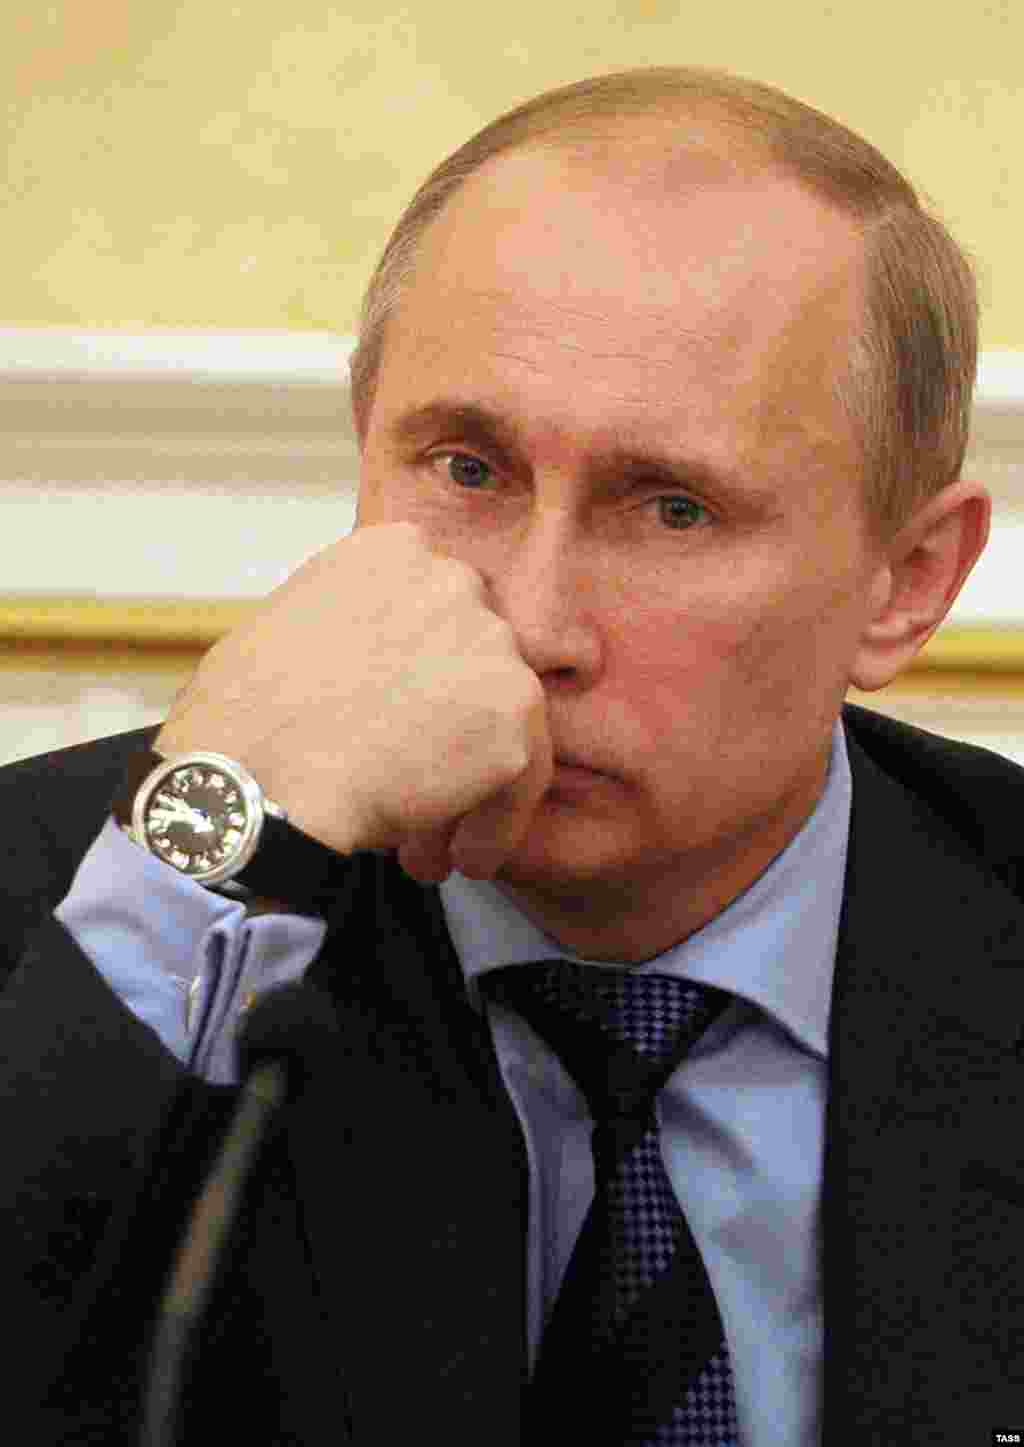 Putin reportedly has a large collection of luxury watches, including some made by the Swiss watchmaker Blancpain. His collection is reputed to be worth nearly $700,000.